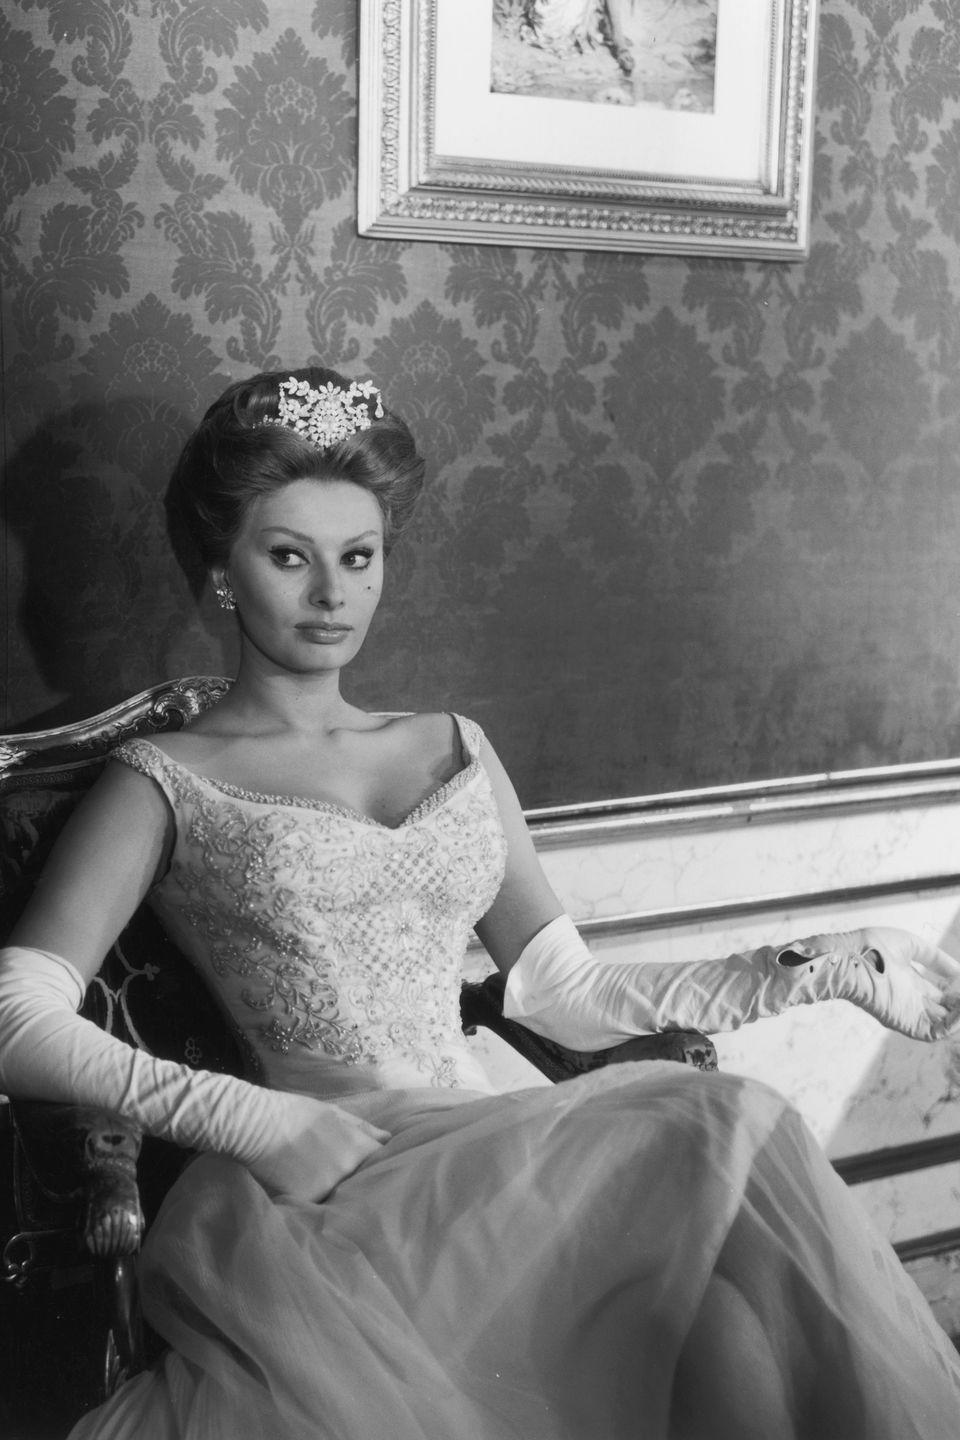 <p>Sophia Loren takes a break from filming in 1960. For <em>A Breath of Scandal, </em>the Italian actress donned a full length ball gown, elbow-length gloves, and a tiara. </p>